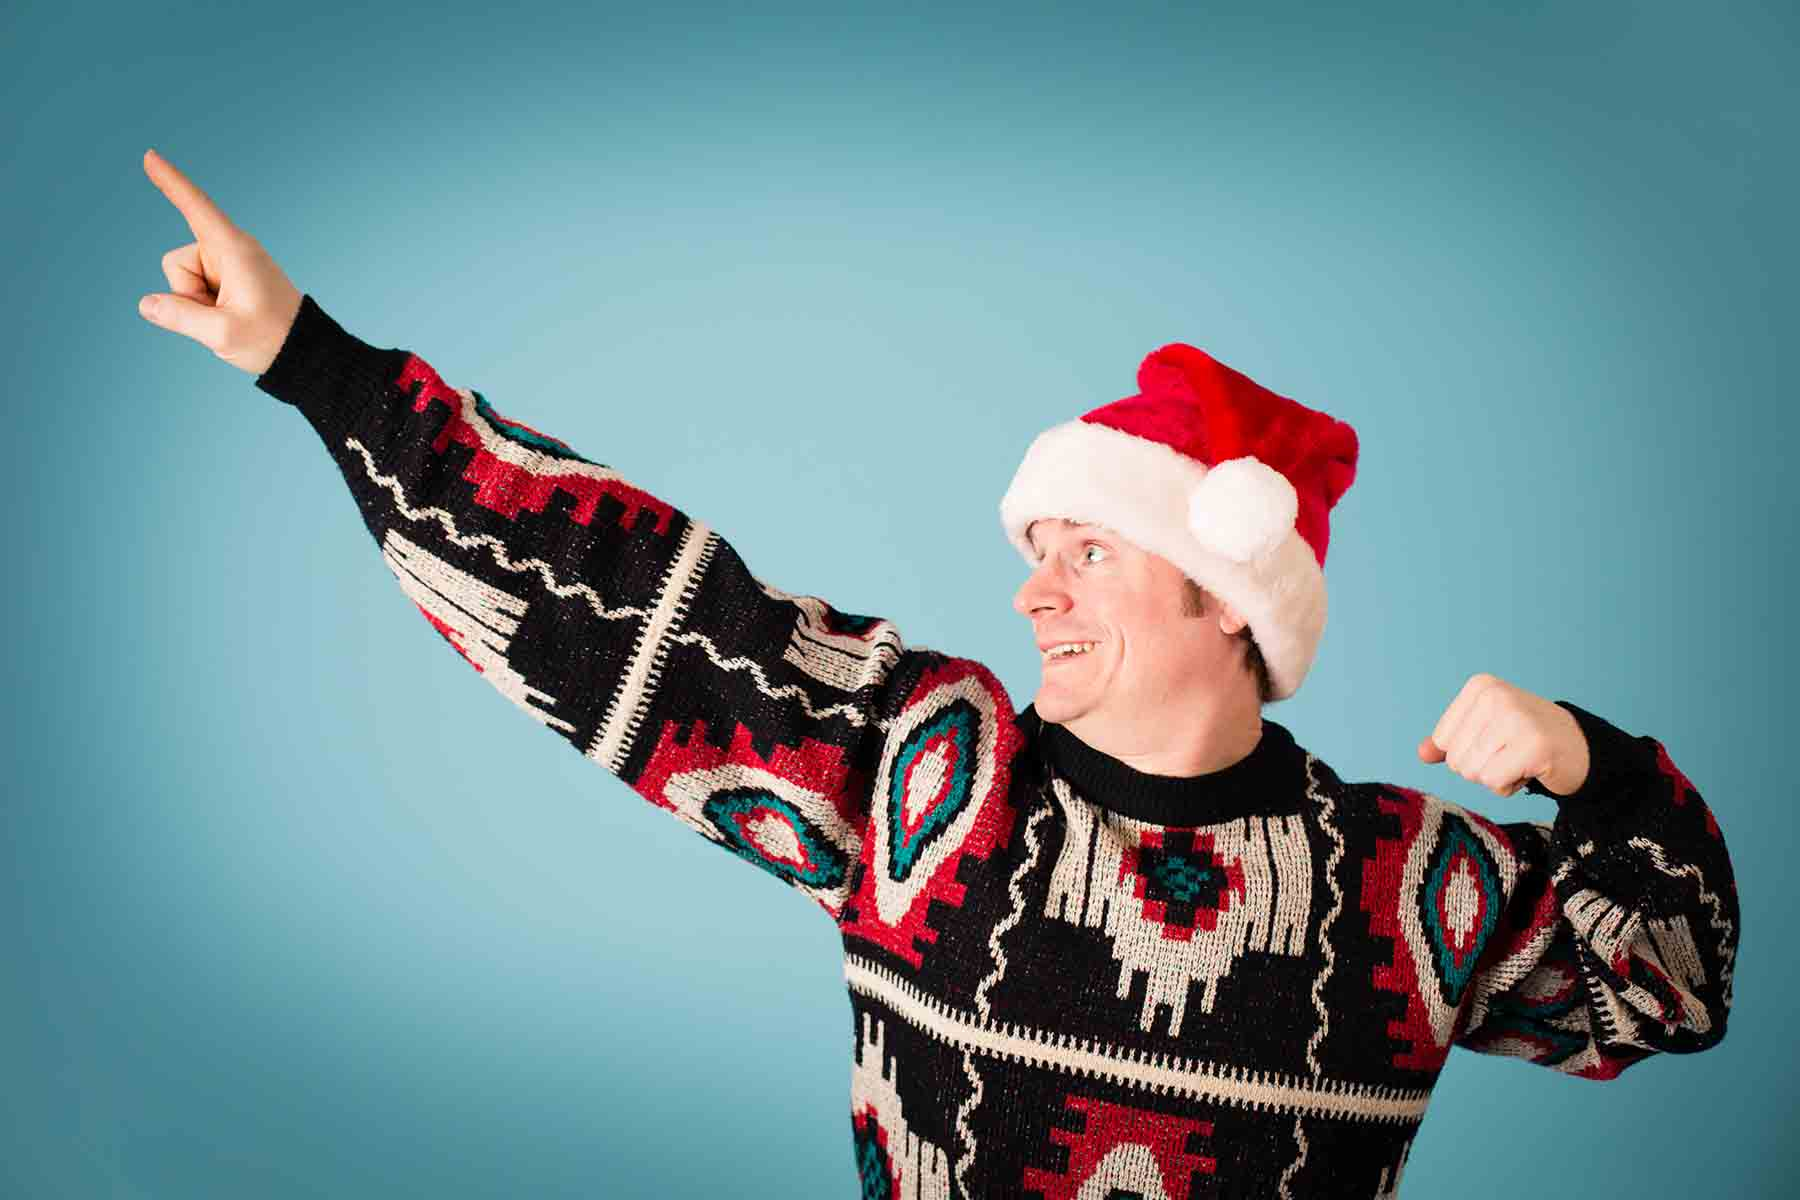 Man wearing ugly Christmas sweater and Santa hat